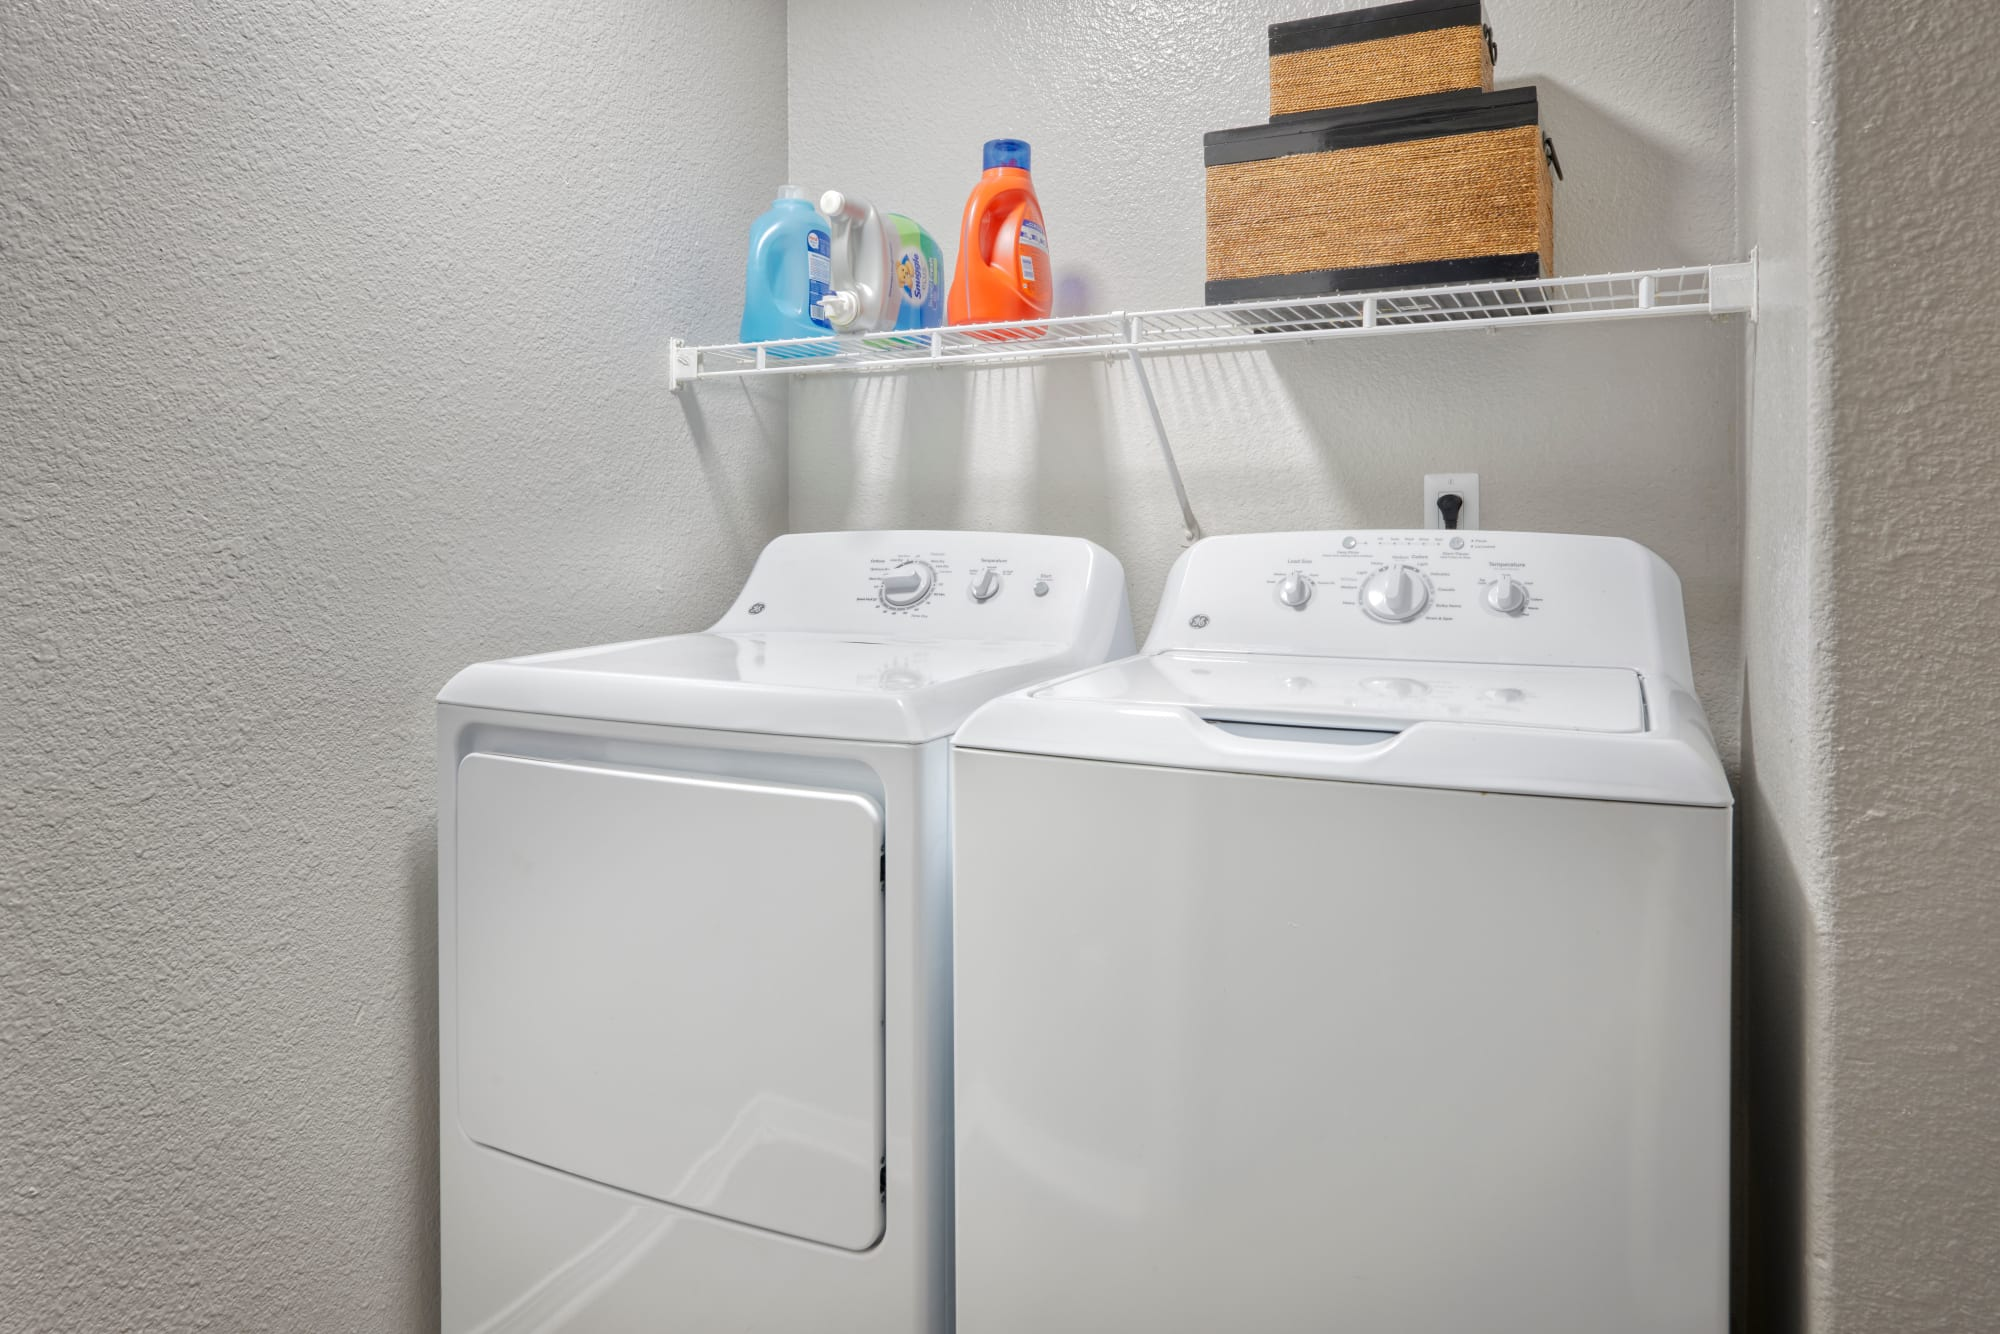 Washer and dryer at Promenade at Hunter's Glen Apartments in Thornton, Colorado